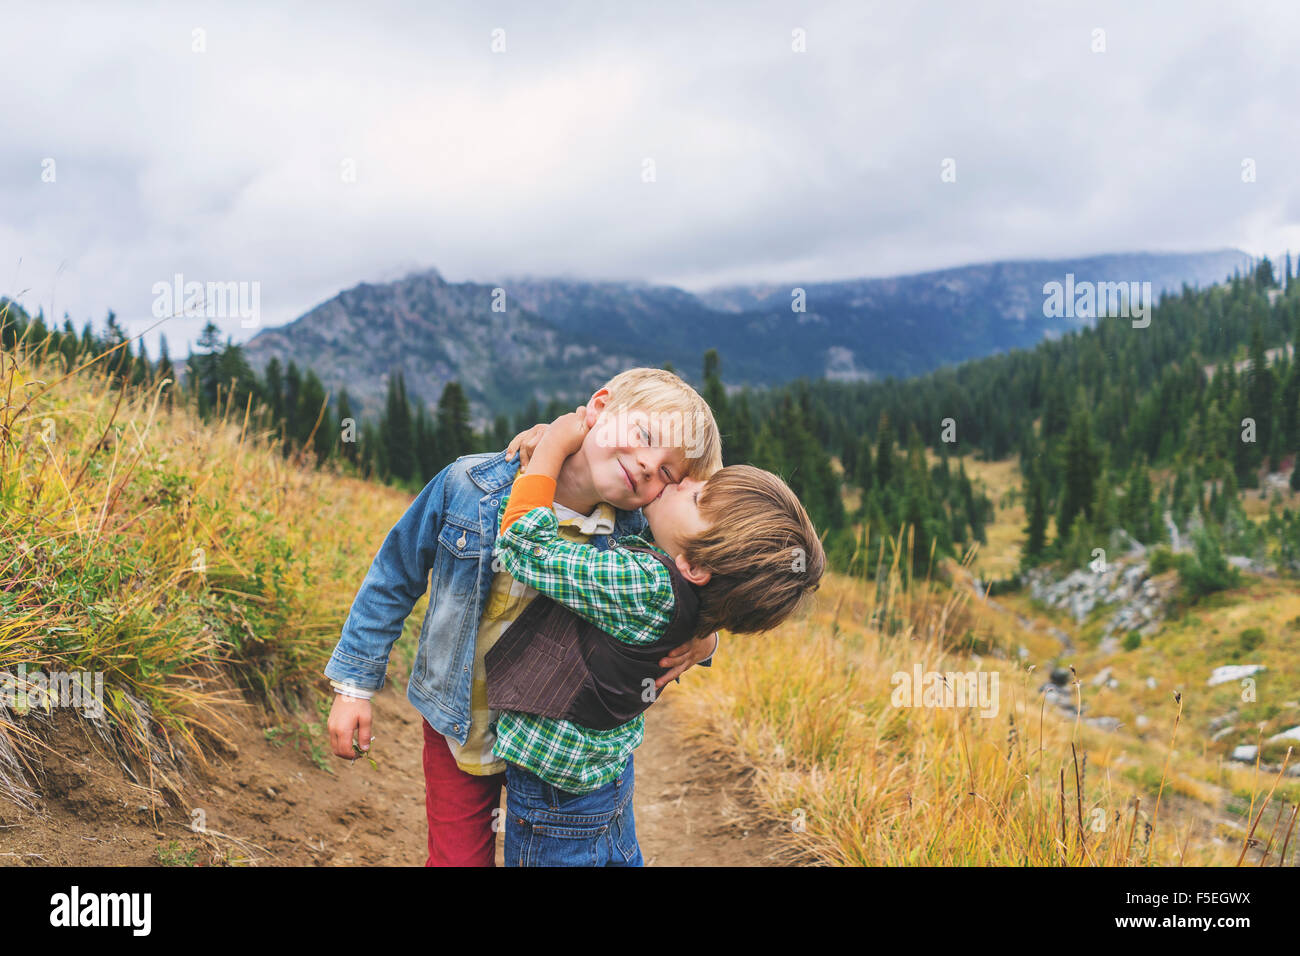 Two brothers hugging and kissing on mountain path - Stock Image